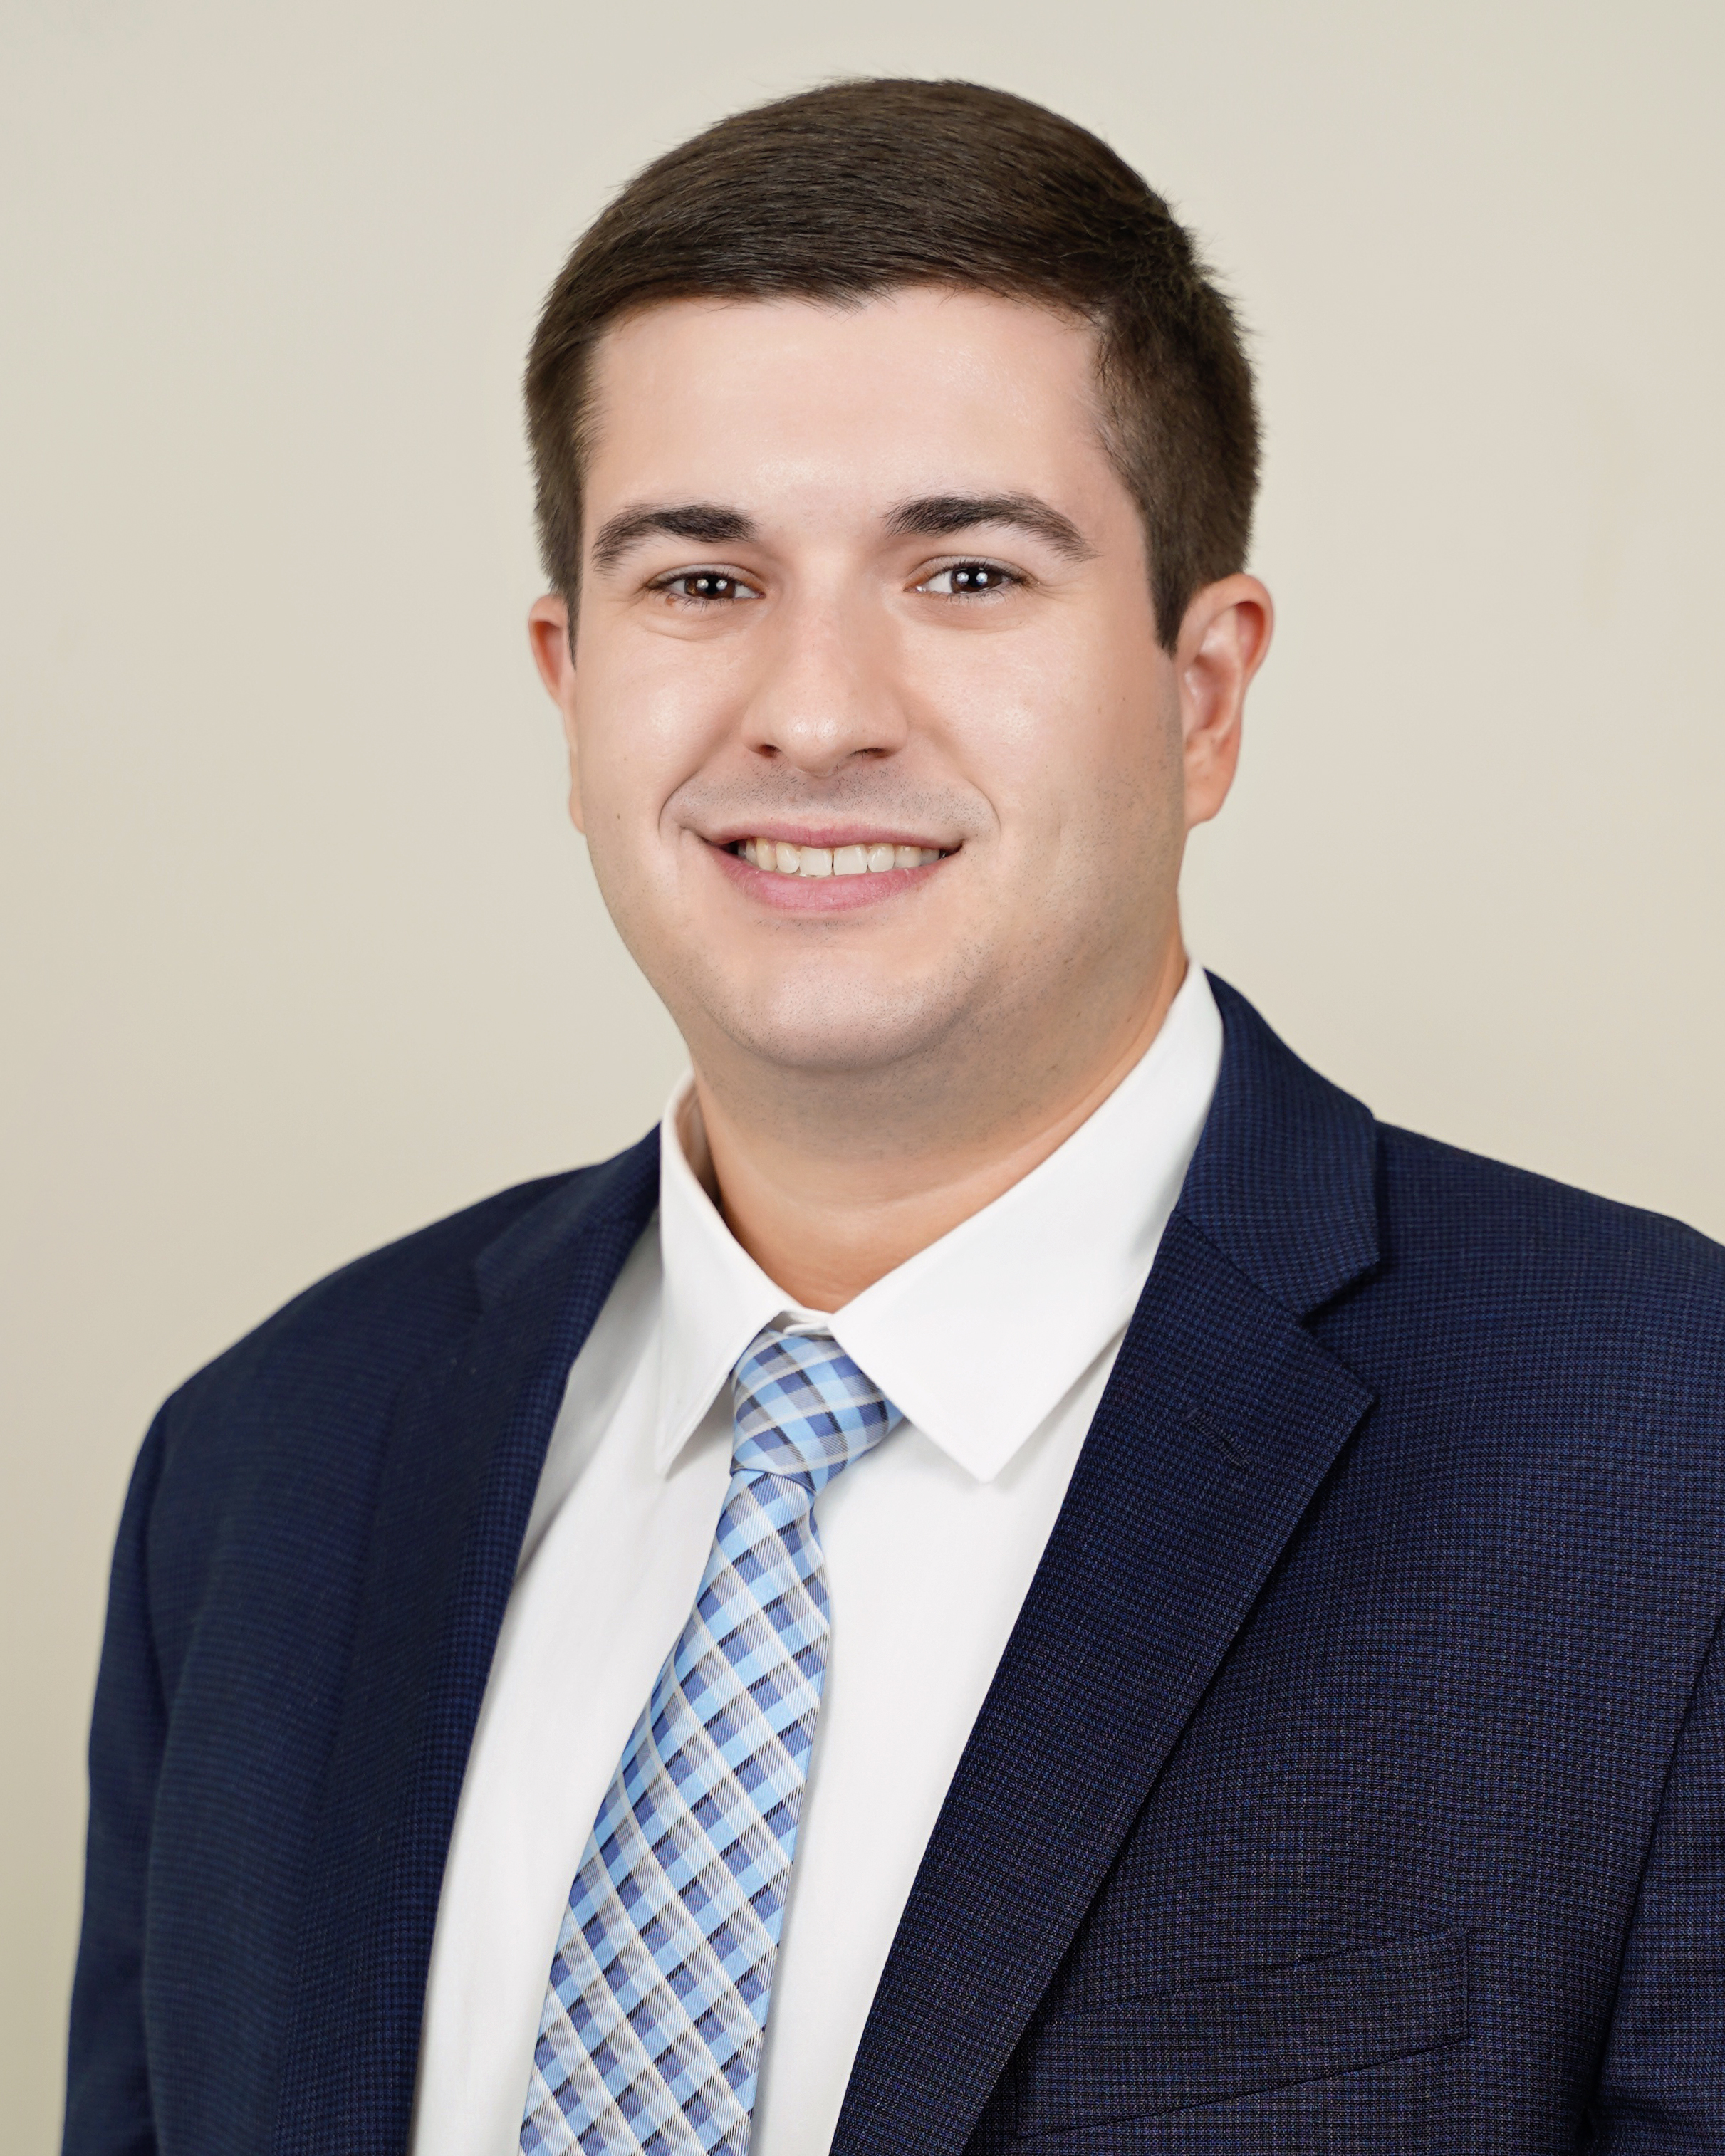 Tyler Boudreaux - Tyler was born and raised in the greater New Orleans area. In 2008, he graduated from Brother Martin High School and in 2013 received his Bachelor of Science Degree in Marketing from the University of New Orleans. Tyler began his career in the Insurance industry in 2016 after working three years in sales and marketing. He is a licensed Property and Casualty producer and has spent the last few years servicing commercial and personal lines clients. Tyler is currently working on developing new business for the agency. He ismarried and enjoys spending time with family and friends and staying active with sports and outdoor activities.